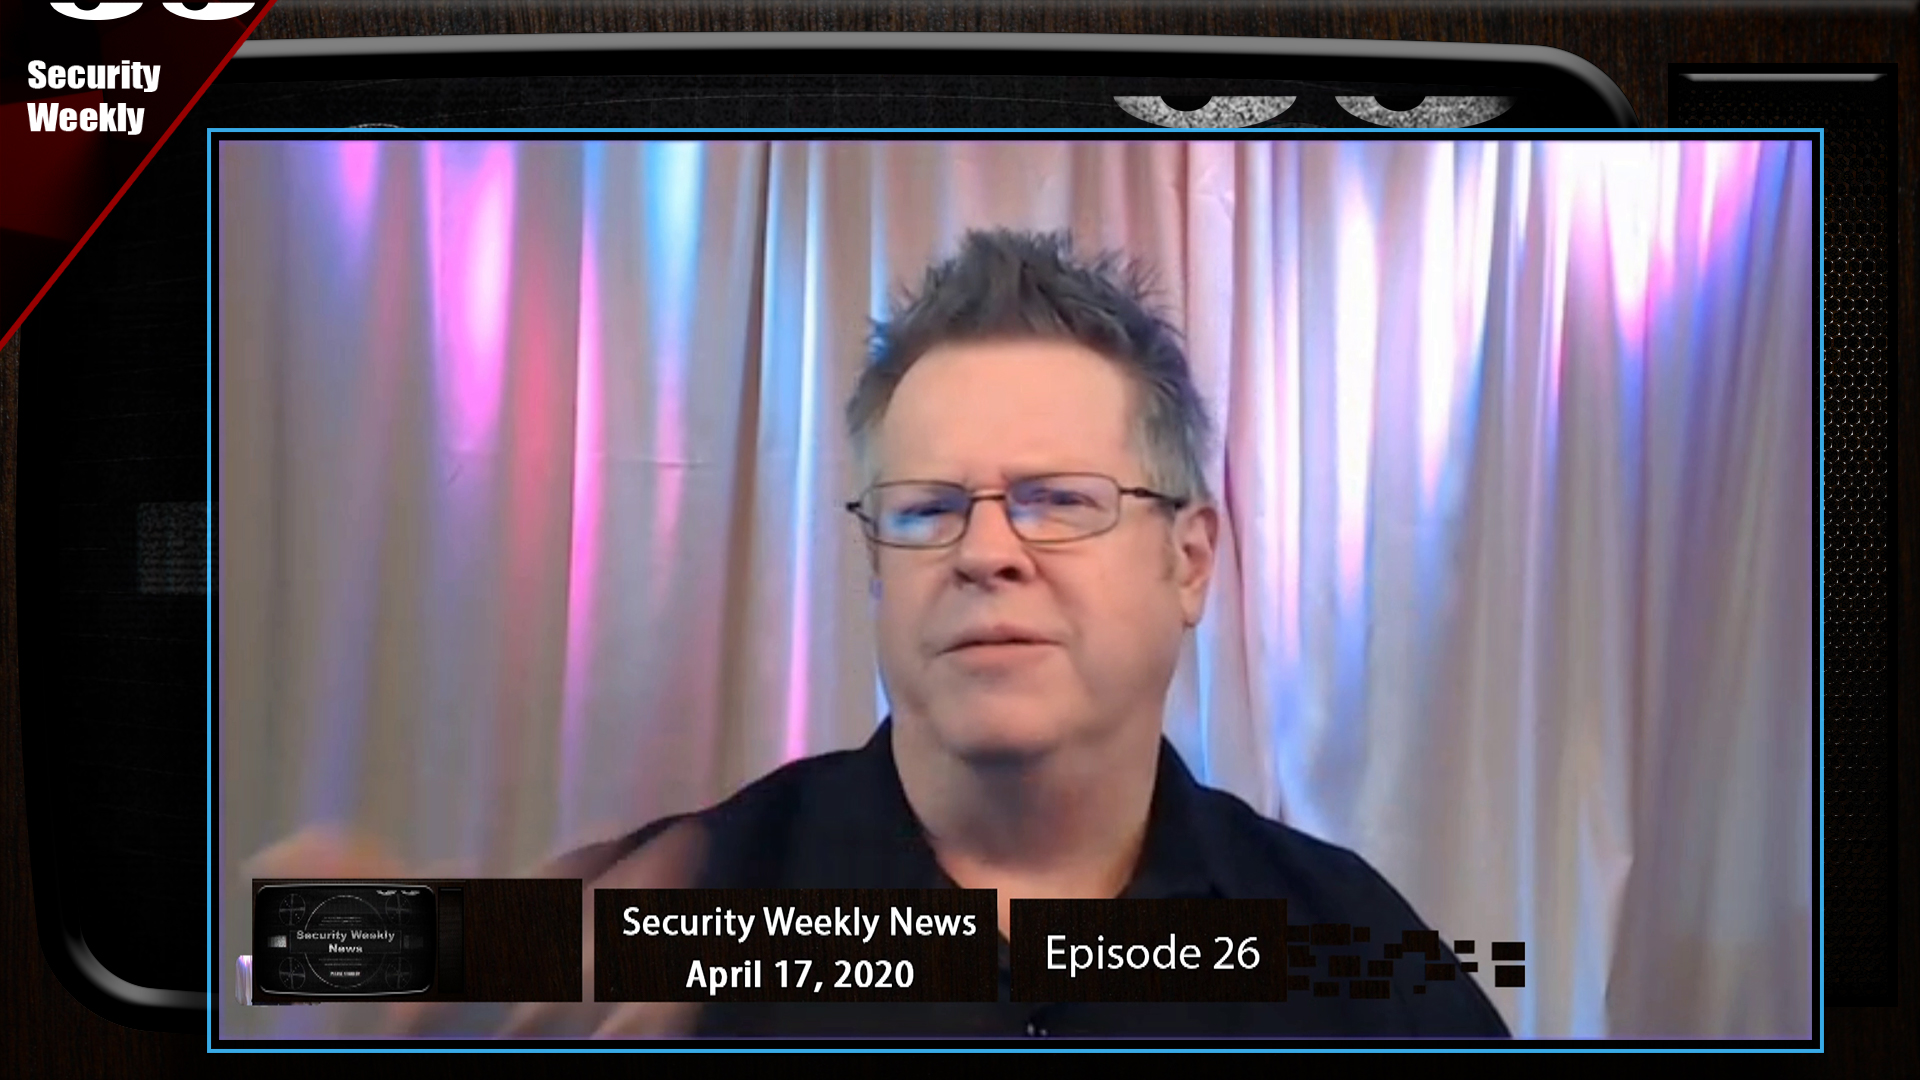 Artwork for Masking Face ID, Hospital Hacks, & Attacking 5G - Wrap Up - SWN #26